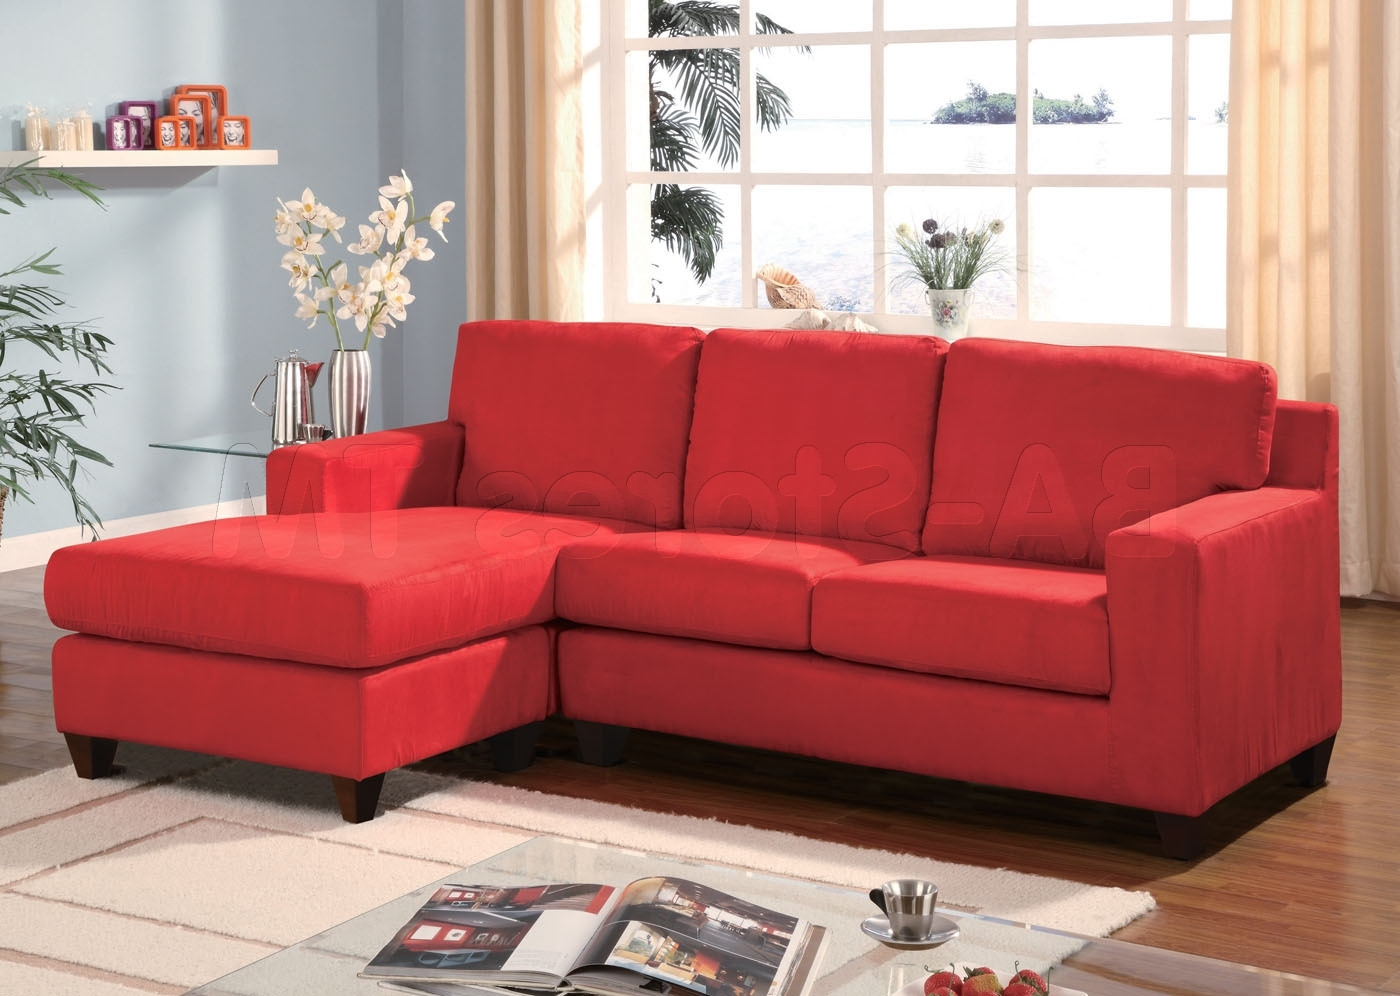 Red Sectional Sofa For Newly Wed Couples Home – Furnitureanddecors For Most Up To Date Red Sectional Sofas (View 6 of 15)